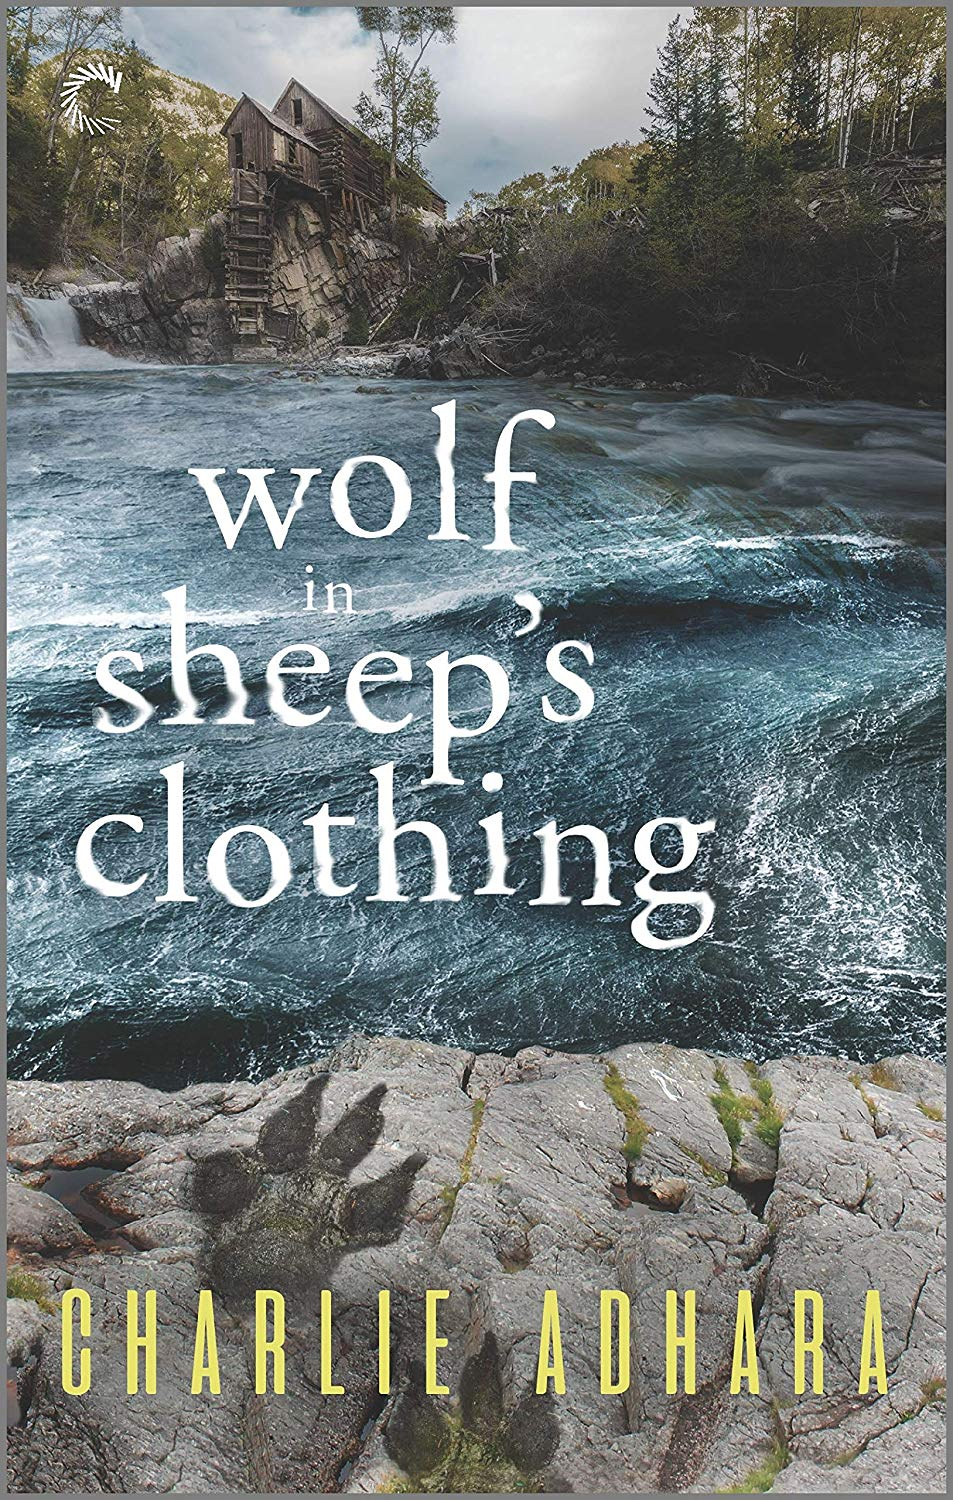 . Wolf in Sheep's Clothing (Big B - Charlie Adhara